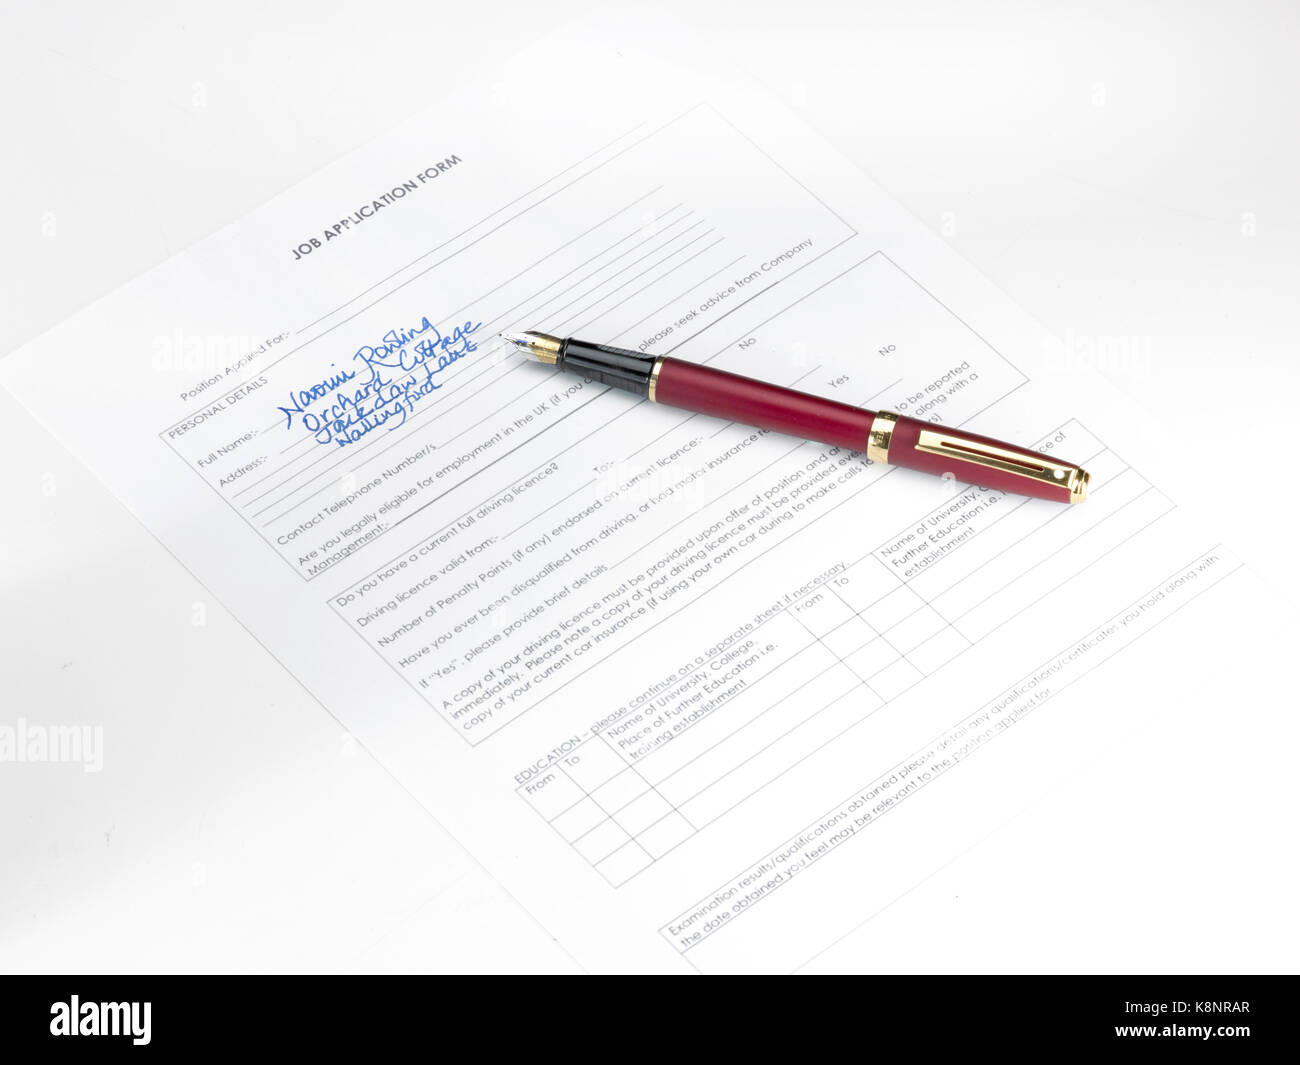 Dtc job application form gallery standard form examples job application form stock photos job application form stock a fountain pen with partially filled out falaconquin